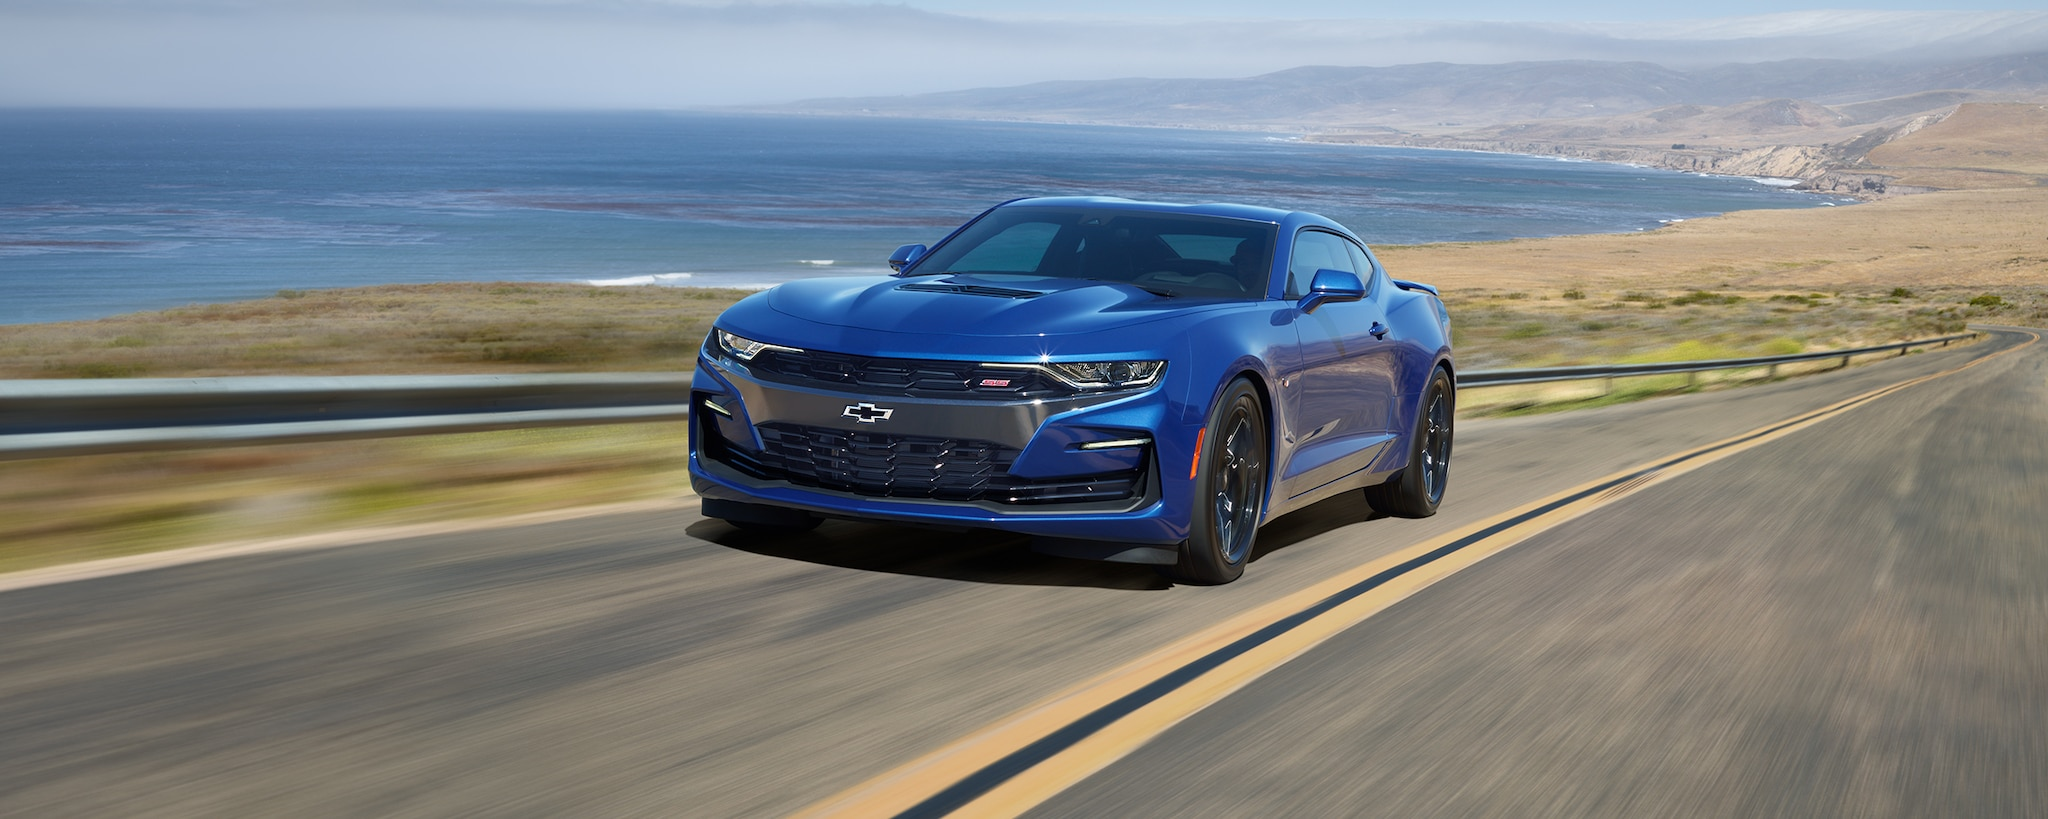 Camaro 2019: vista frontal